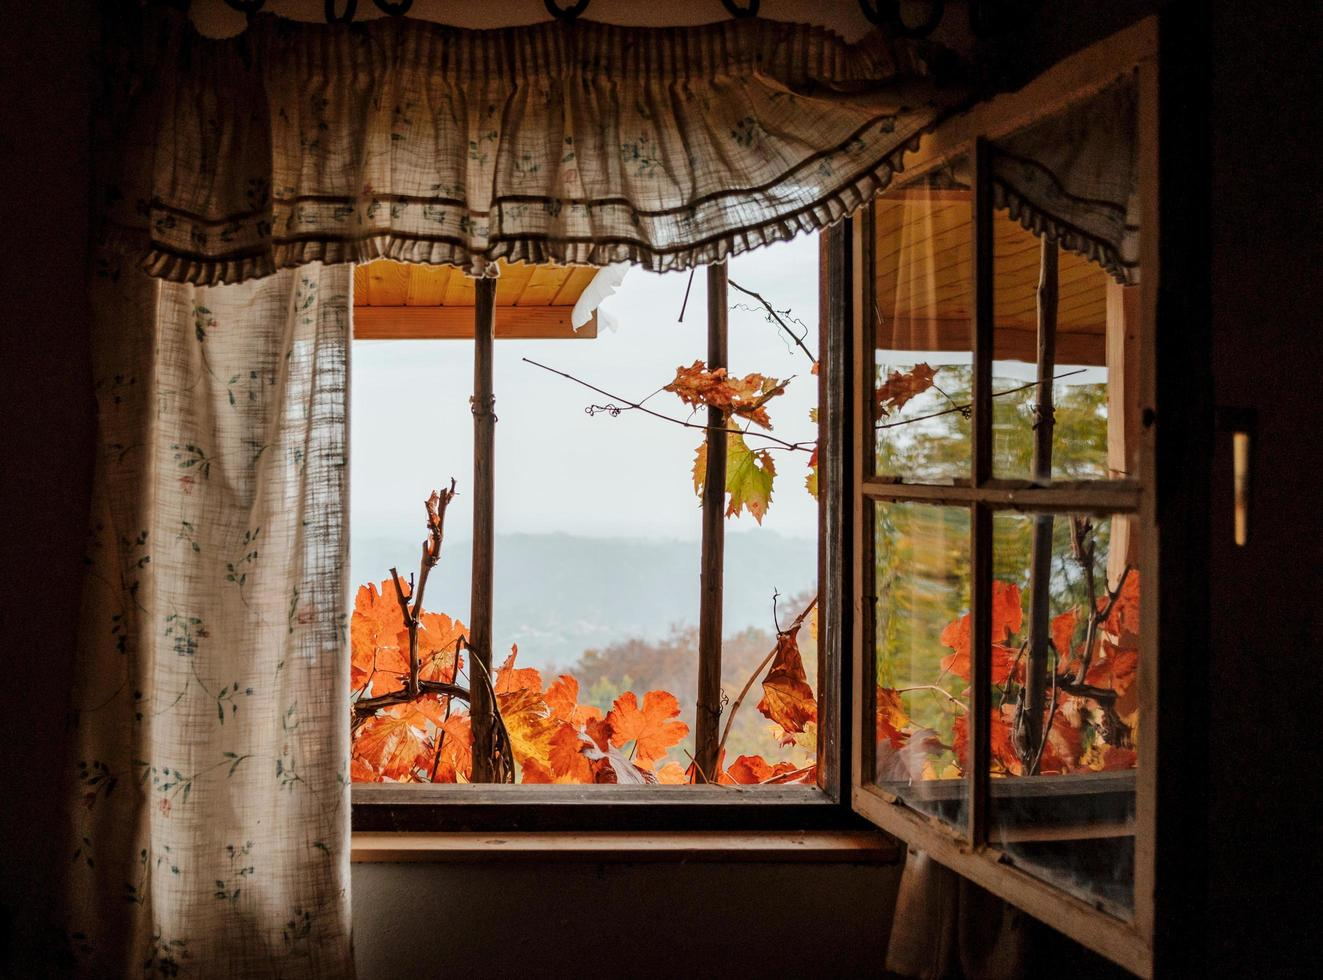 Idyllic view through a window of a cabin in autumn photo